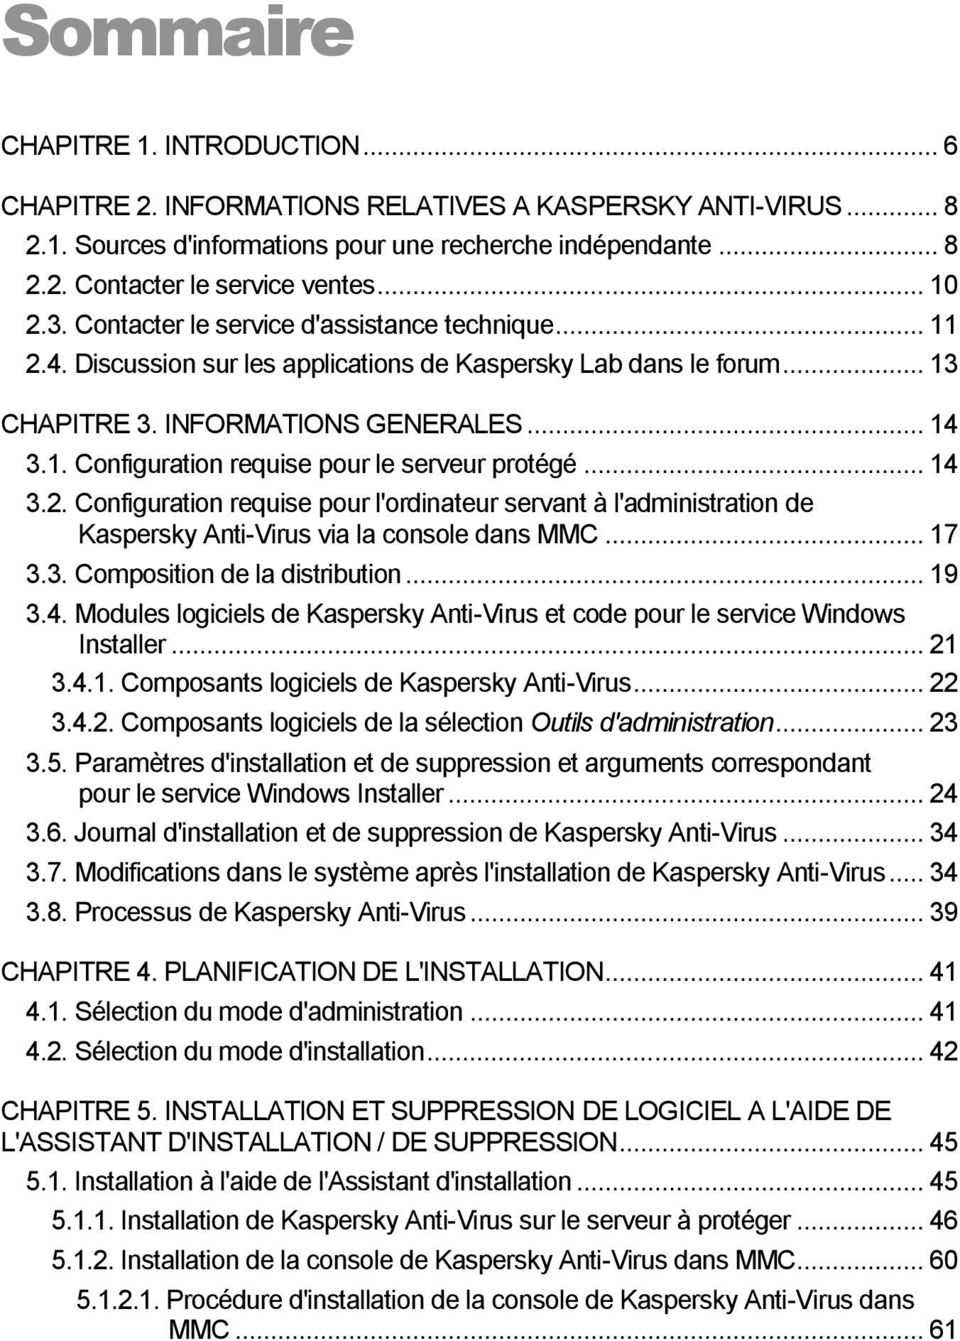 .. 14 3.2. Configuration requise pour l'ordinateur servant à l'administration de Kaspersky Anti-Virus via la console dans MMC... 17 3.3. Composition de la distribution... 19 3.4. Modules logiciels de Kaspersky Anti-Virus et code pour le service Windows Installer.